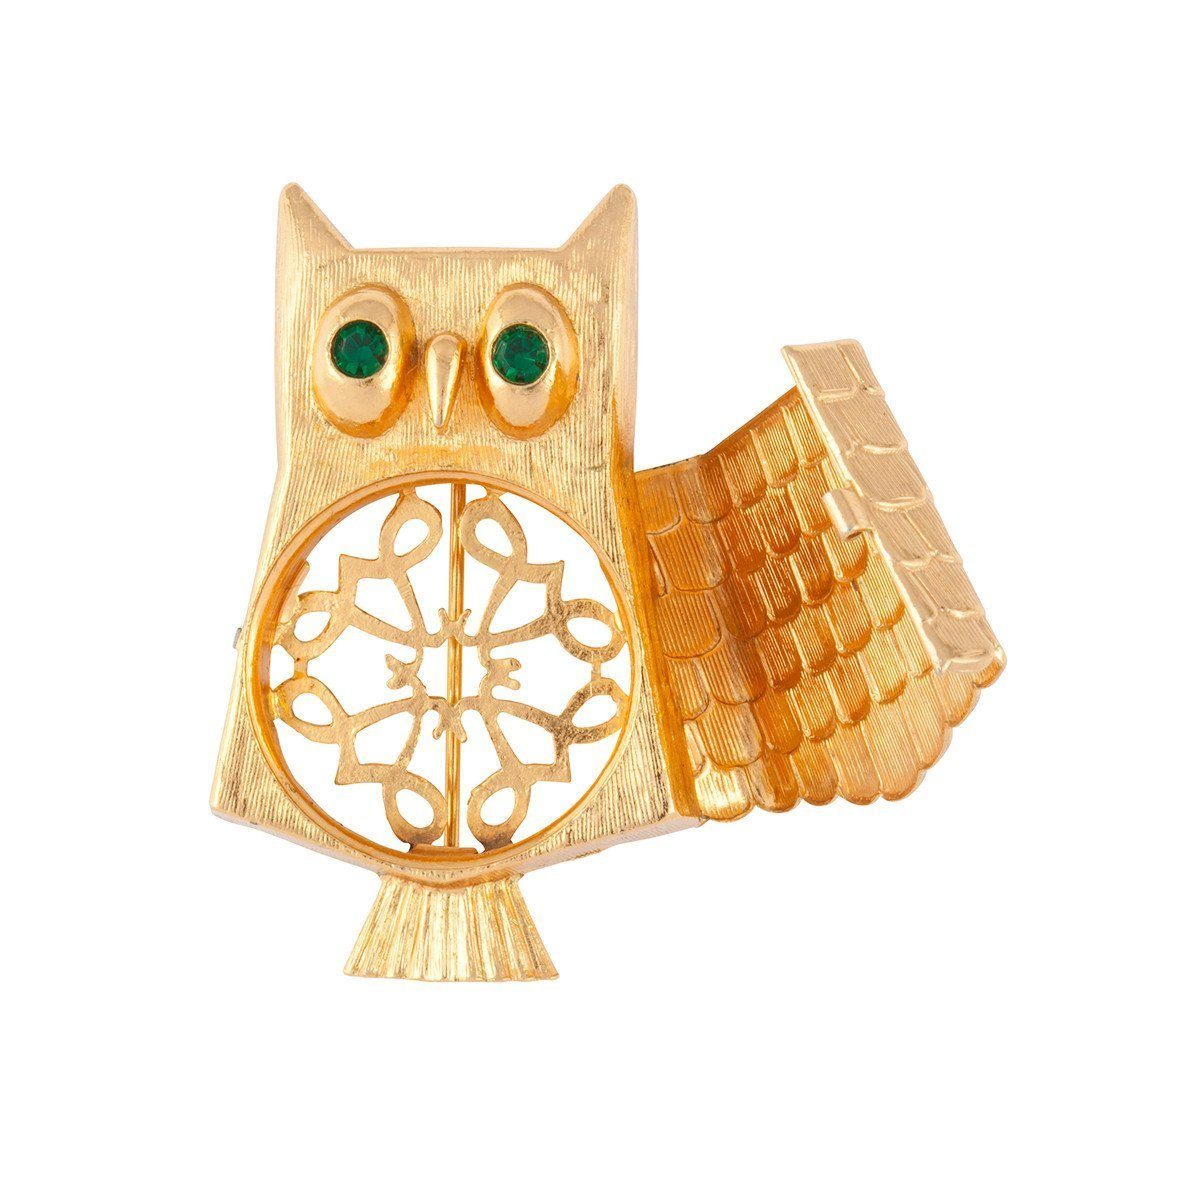 1980S VINTAGE AVON OWL LOCKET BROOCH